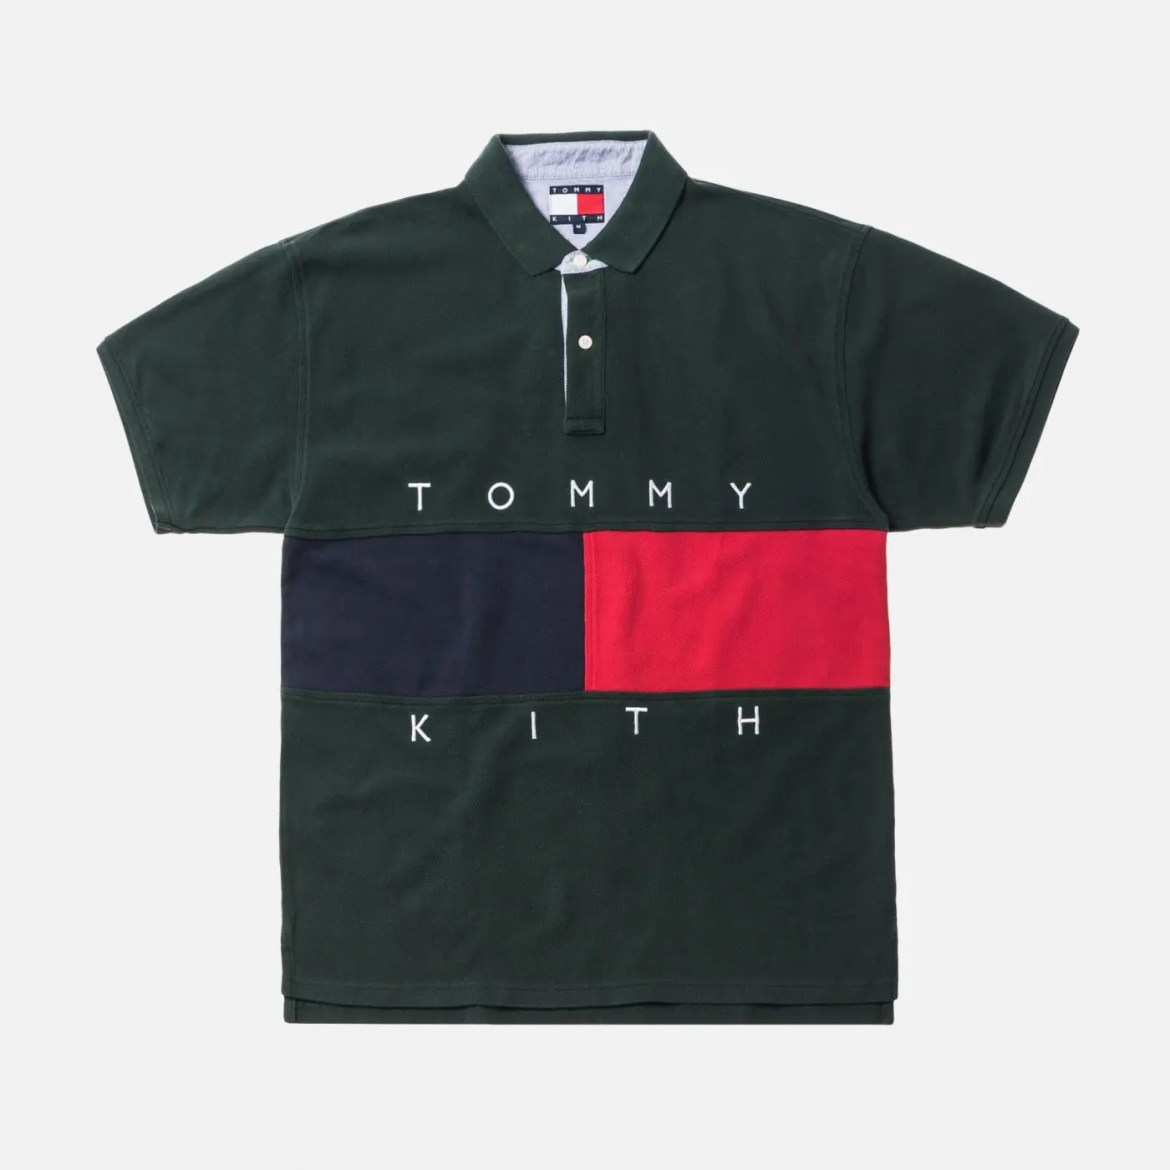 KITH X TOMMY HILFIGER FLAG S/S POLO - FOREST